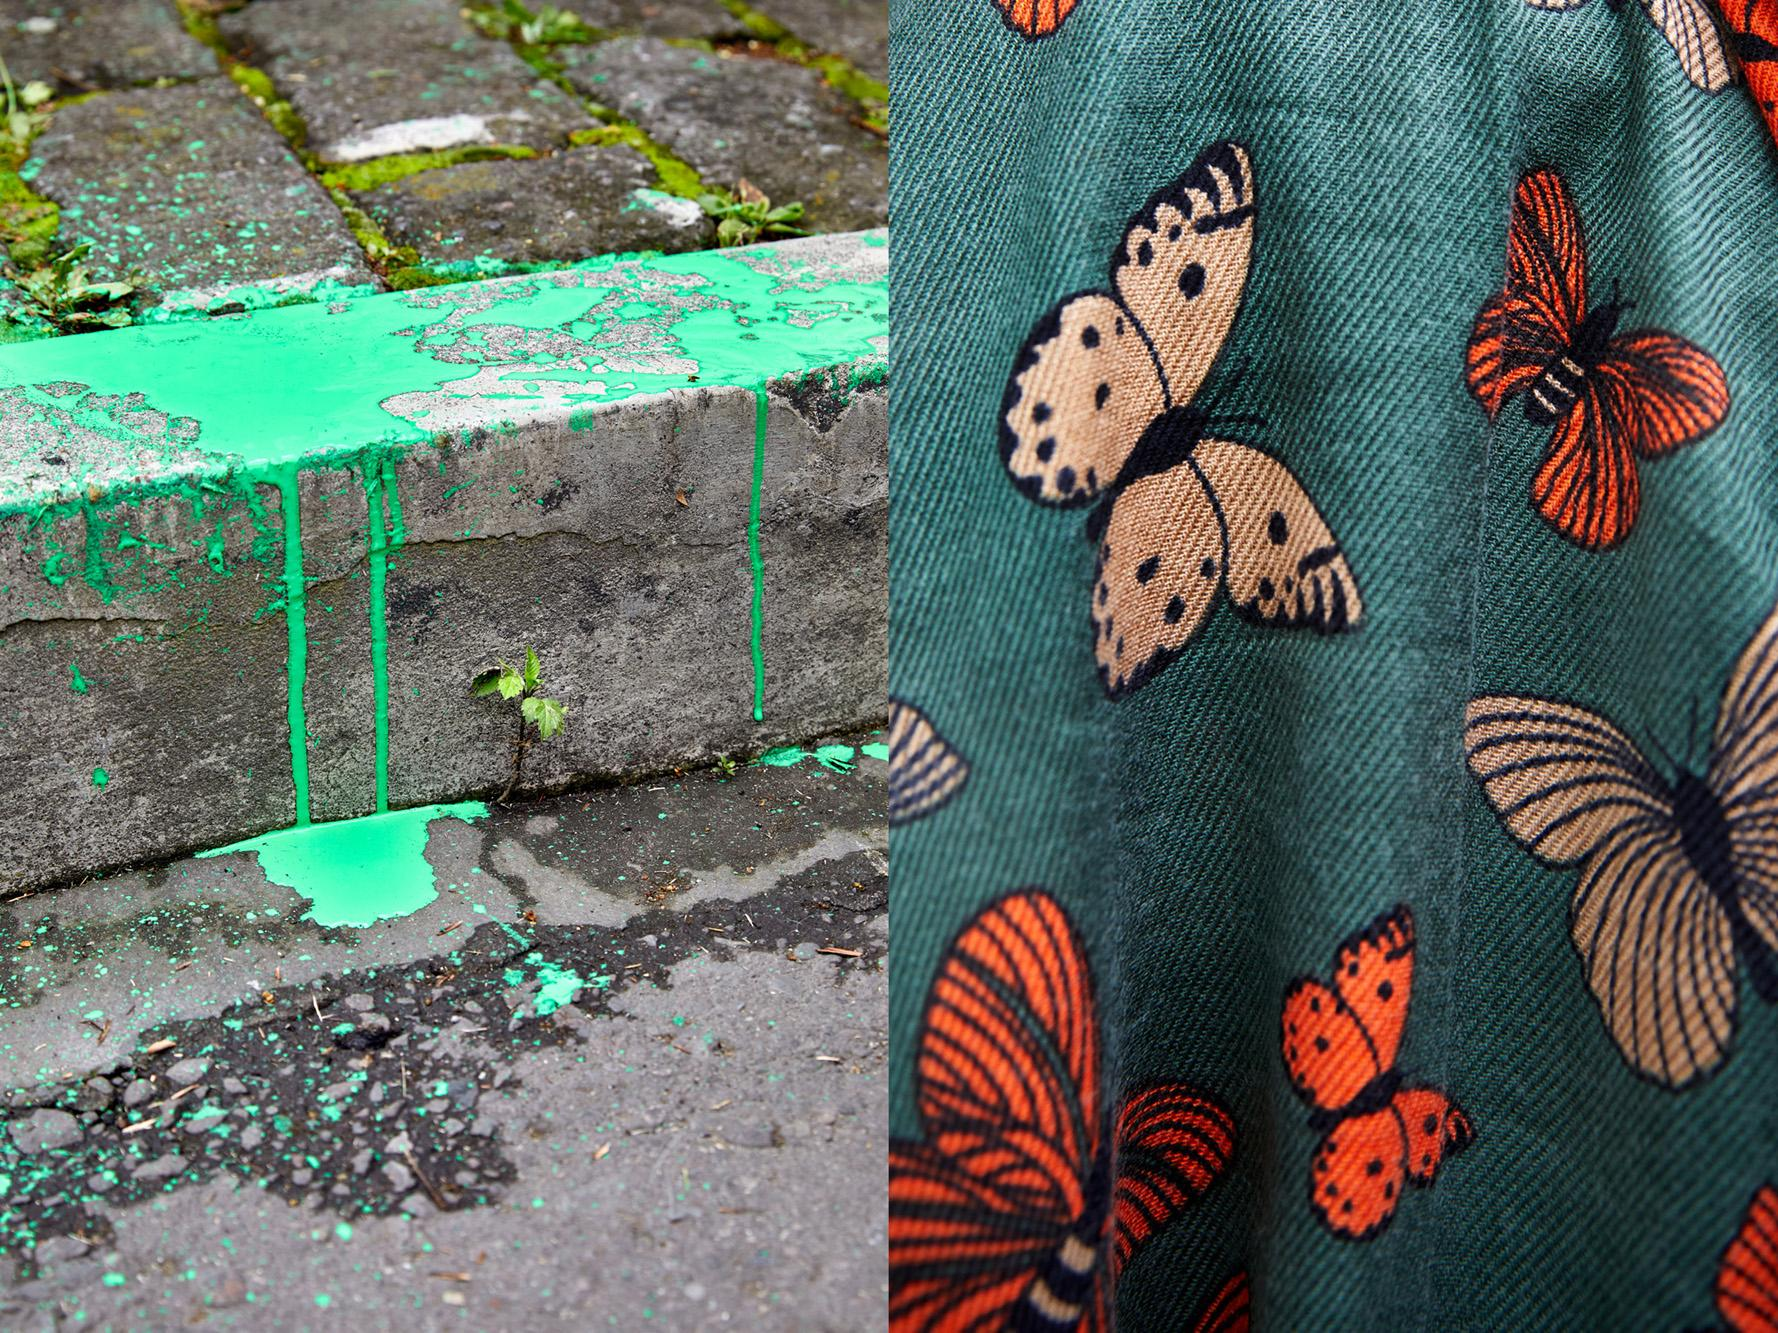 Diptych. Detail of a woman's green handkerchief and green paint at floor. The color green has become a global symbol in the struggle for women's right to decide. April 28, 2021, Quito, Ecuador.